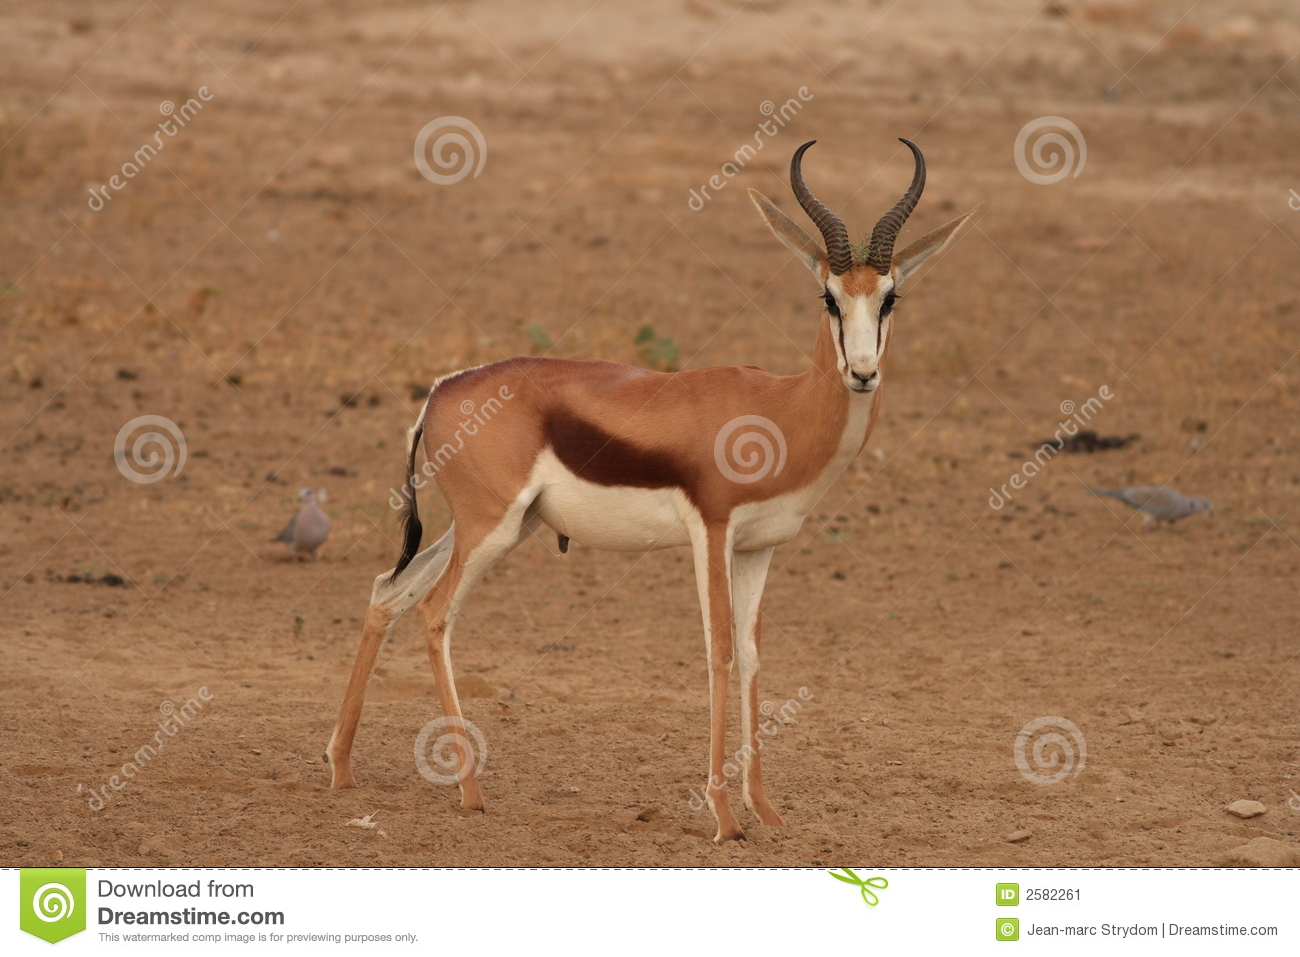 clipart springbok - photo #50